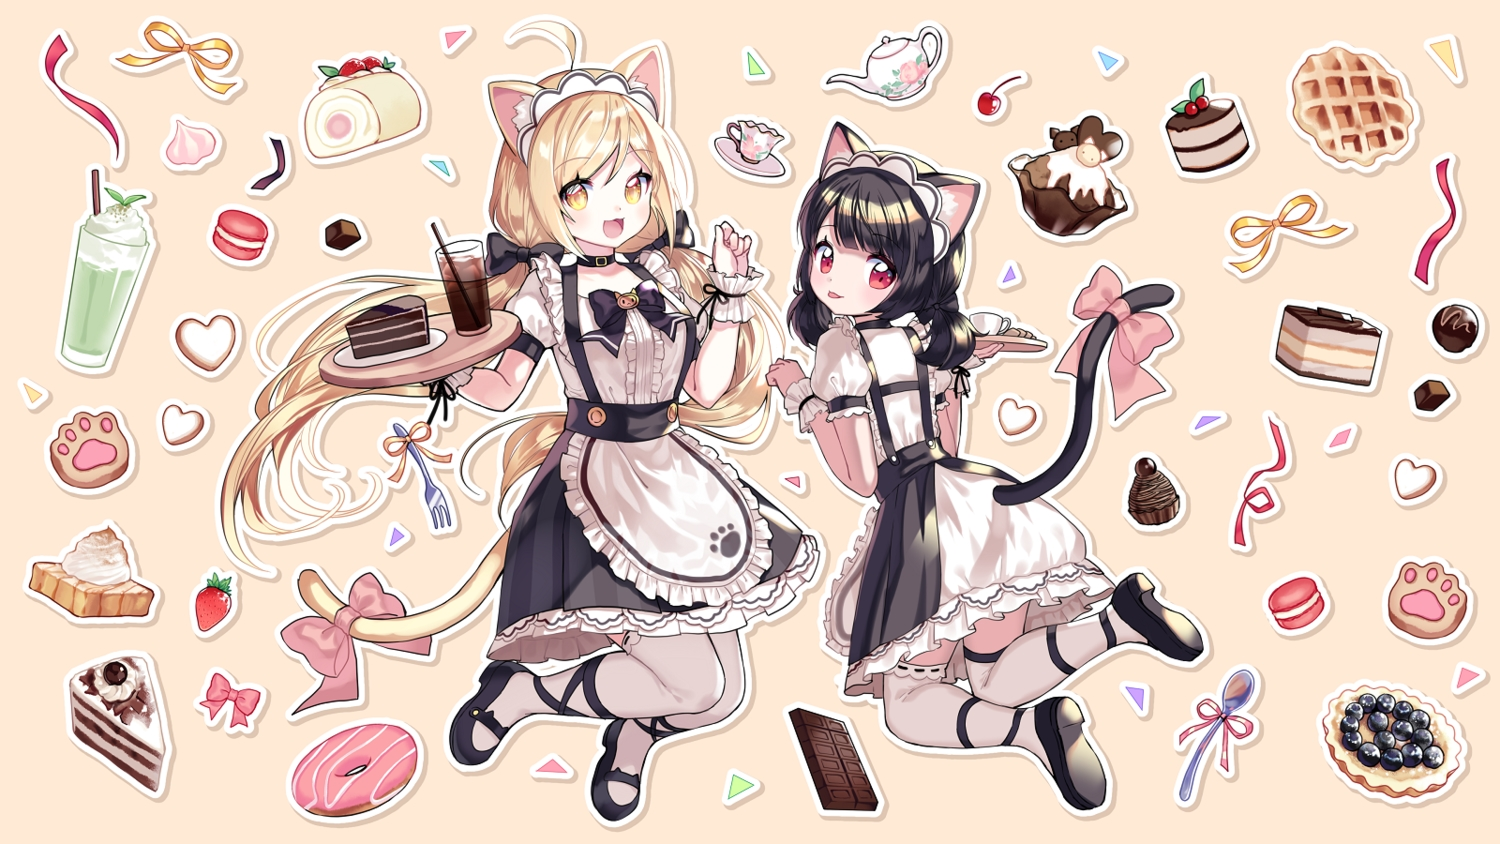 2girls aliasing apron black_hair blonde_hair bow cake catgirl cat_smile cherry chocolate drink food fruit maid mechuragi original red_eyes strawberry tail thighhighs twintails waitress yellow_eyes